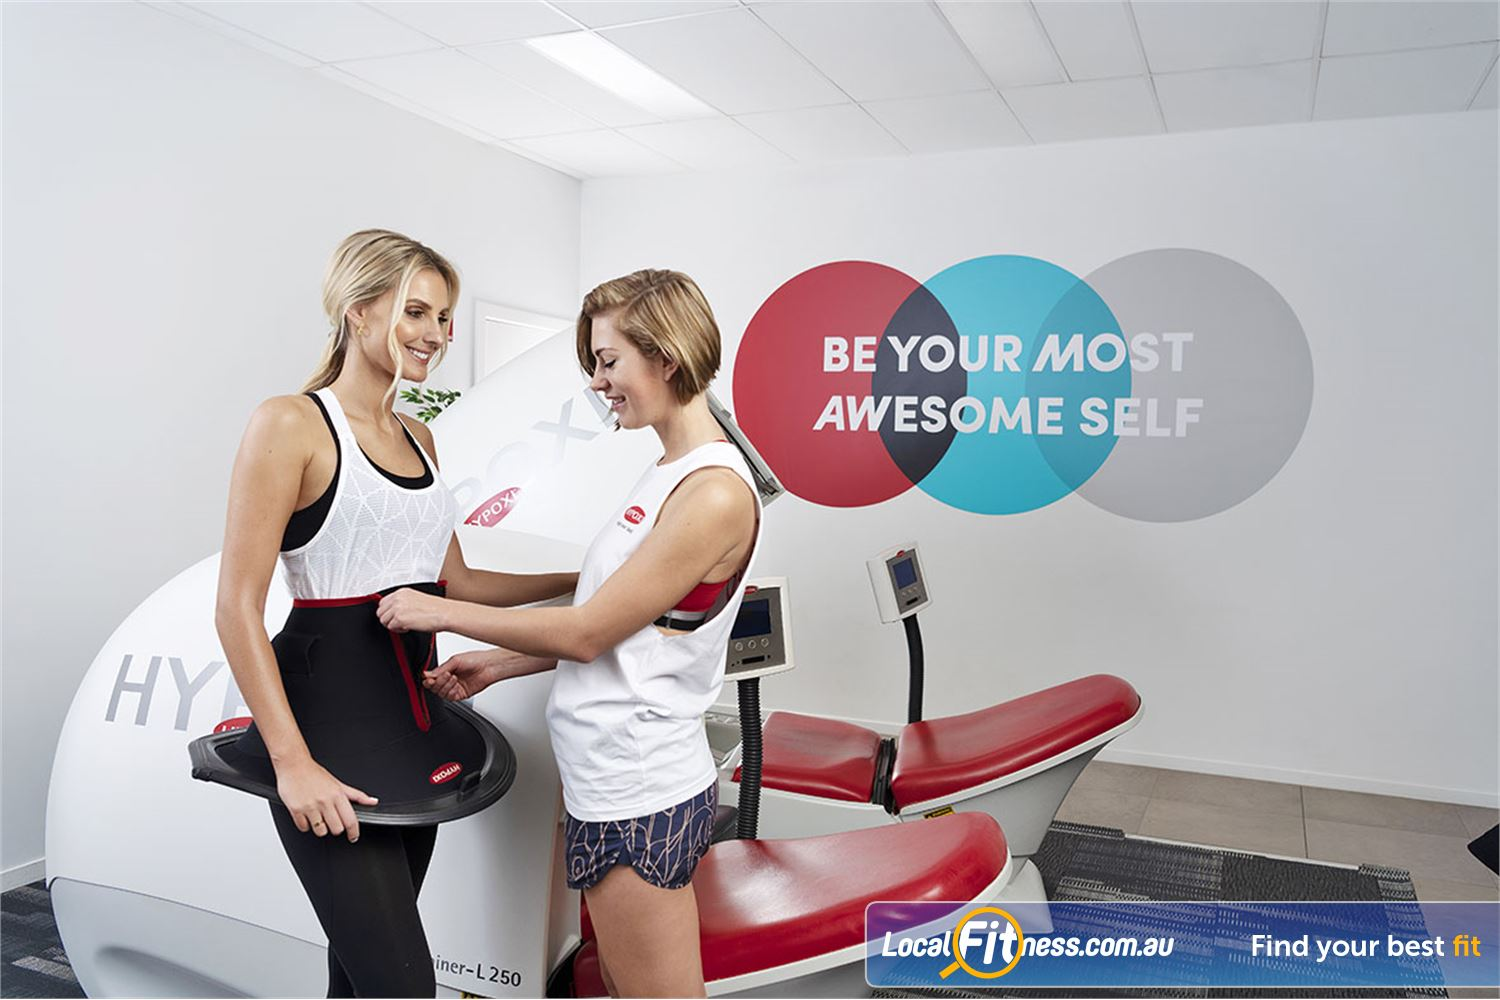 HYPOXI Weight Loss Near Westlake Low-impact exercise with advanced technology and healthy nutrition.